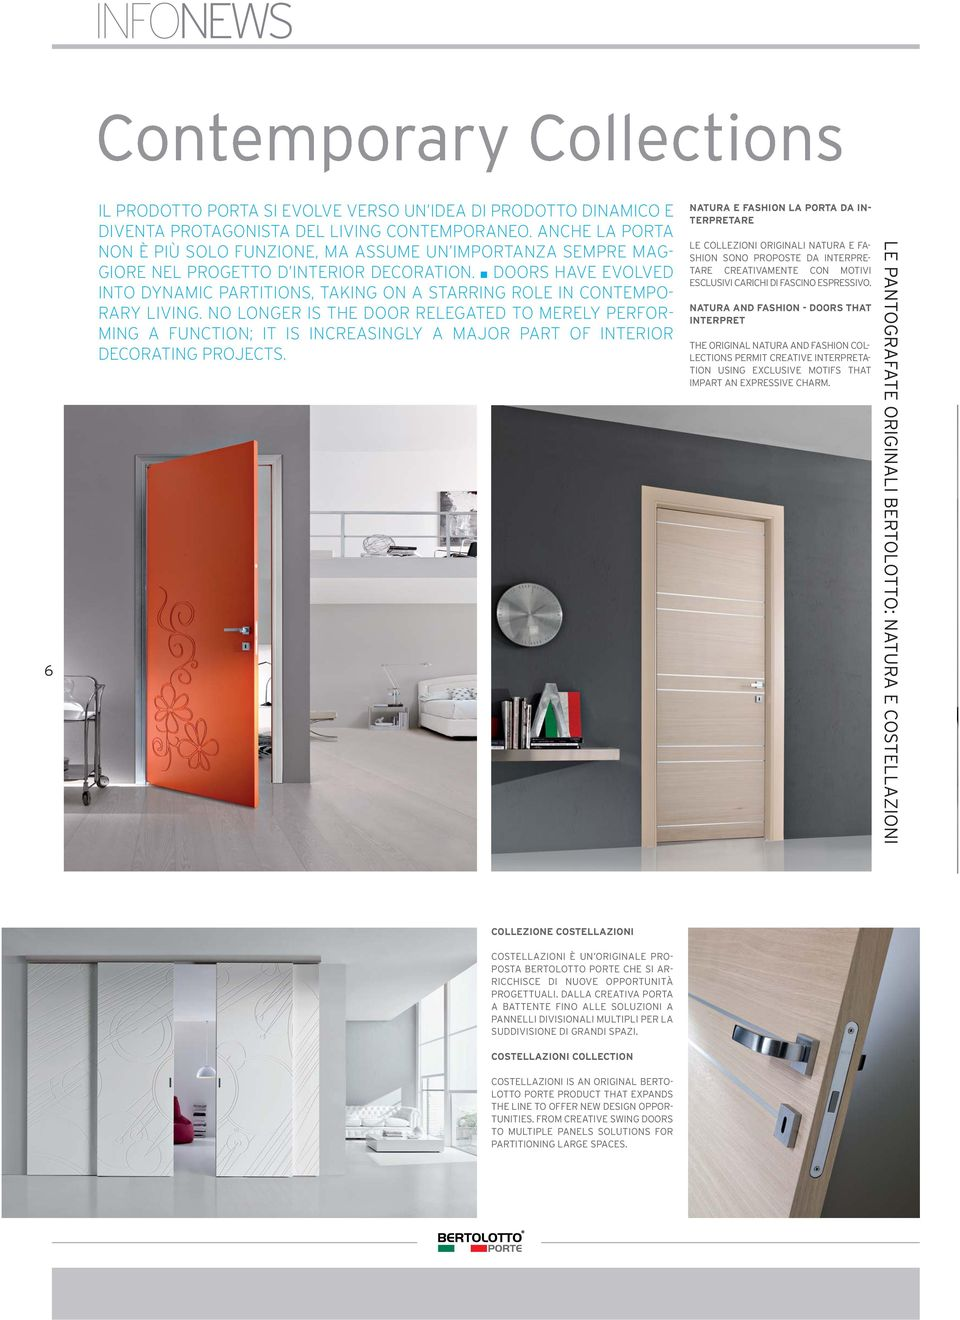 n DOORS HAVE EVOLVED INTO DYNAMIC PARTITIONS, TAKING ON A STARRING ROLE IN CONTEMPO- RARY LIVING.